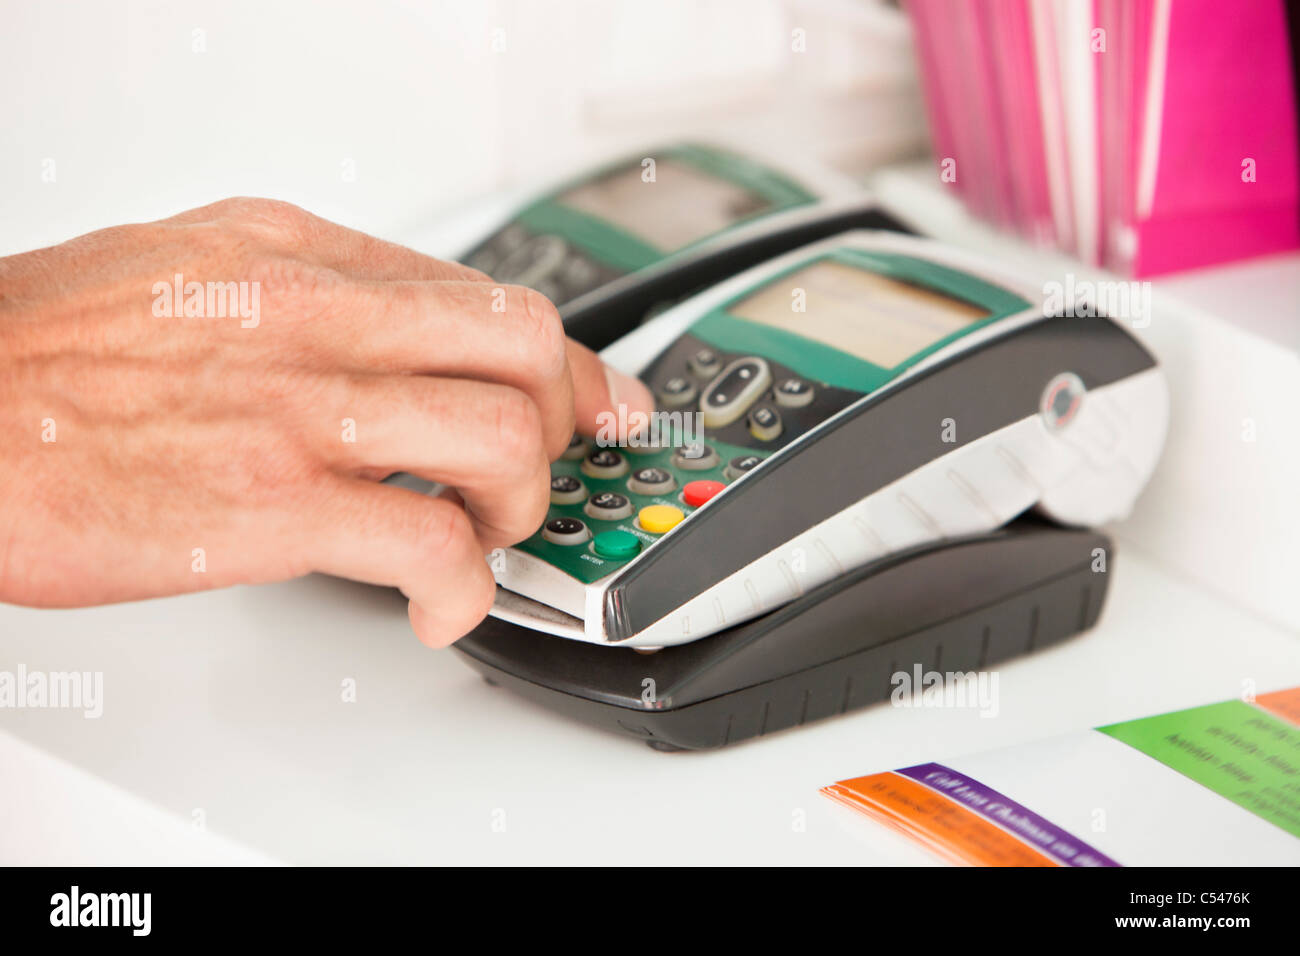 Sales clerk using a credit card reader at counter - Stock Image